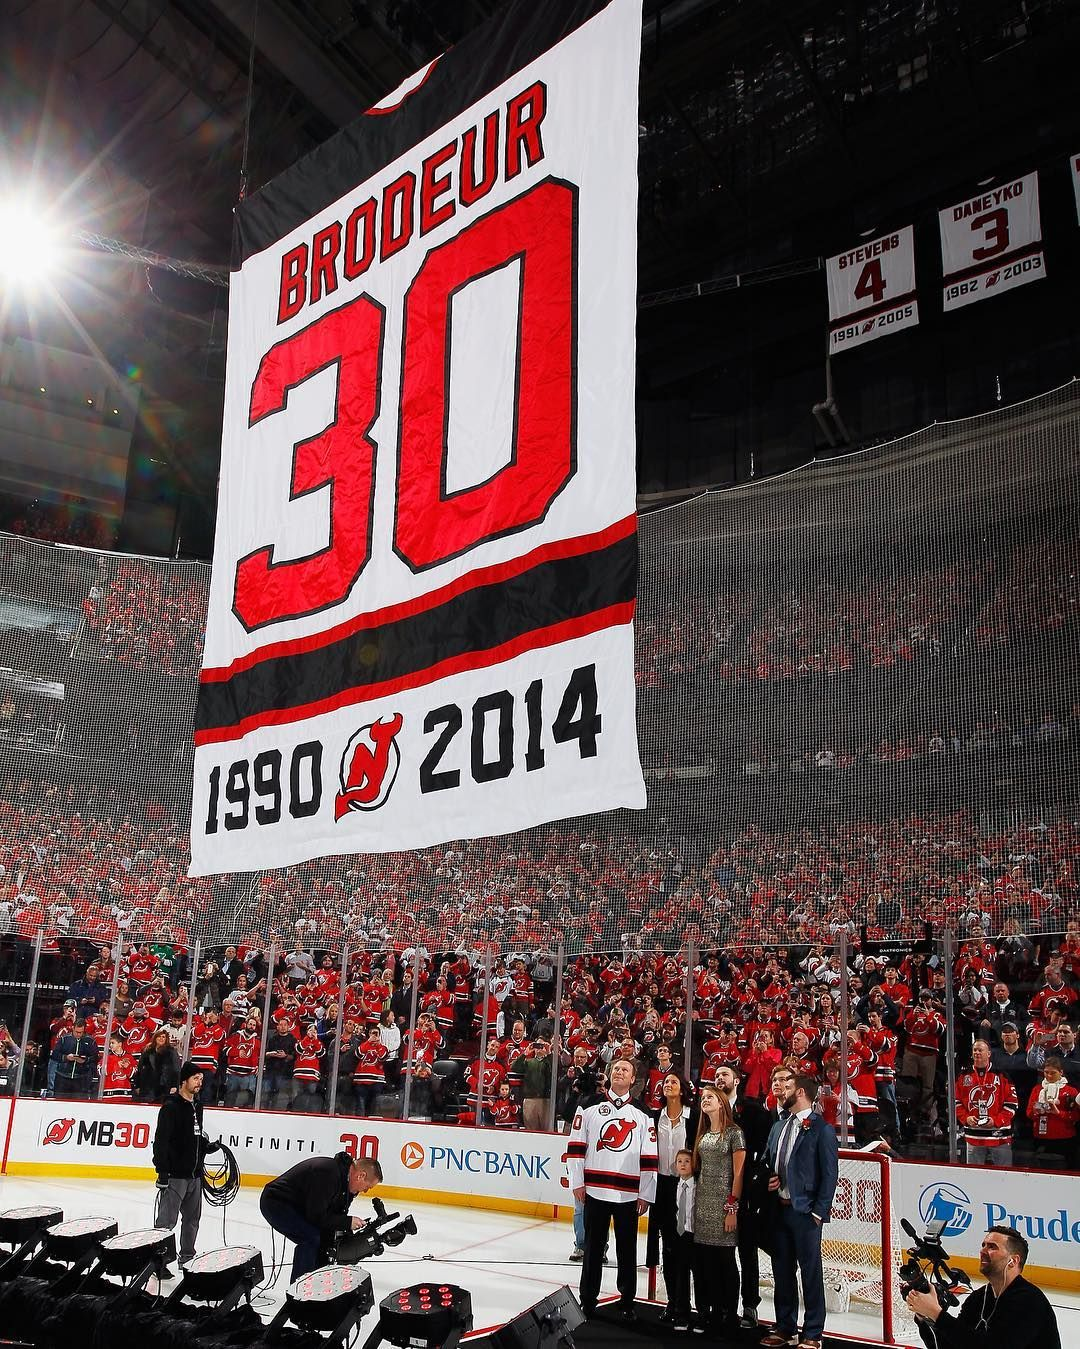 Martin Brodeur S Jersey Retirement Ceremony On February 9 2016